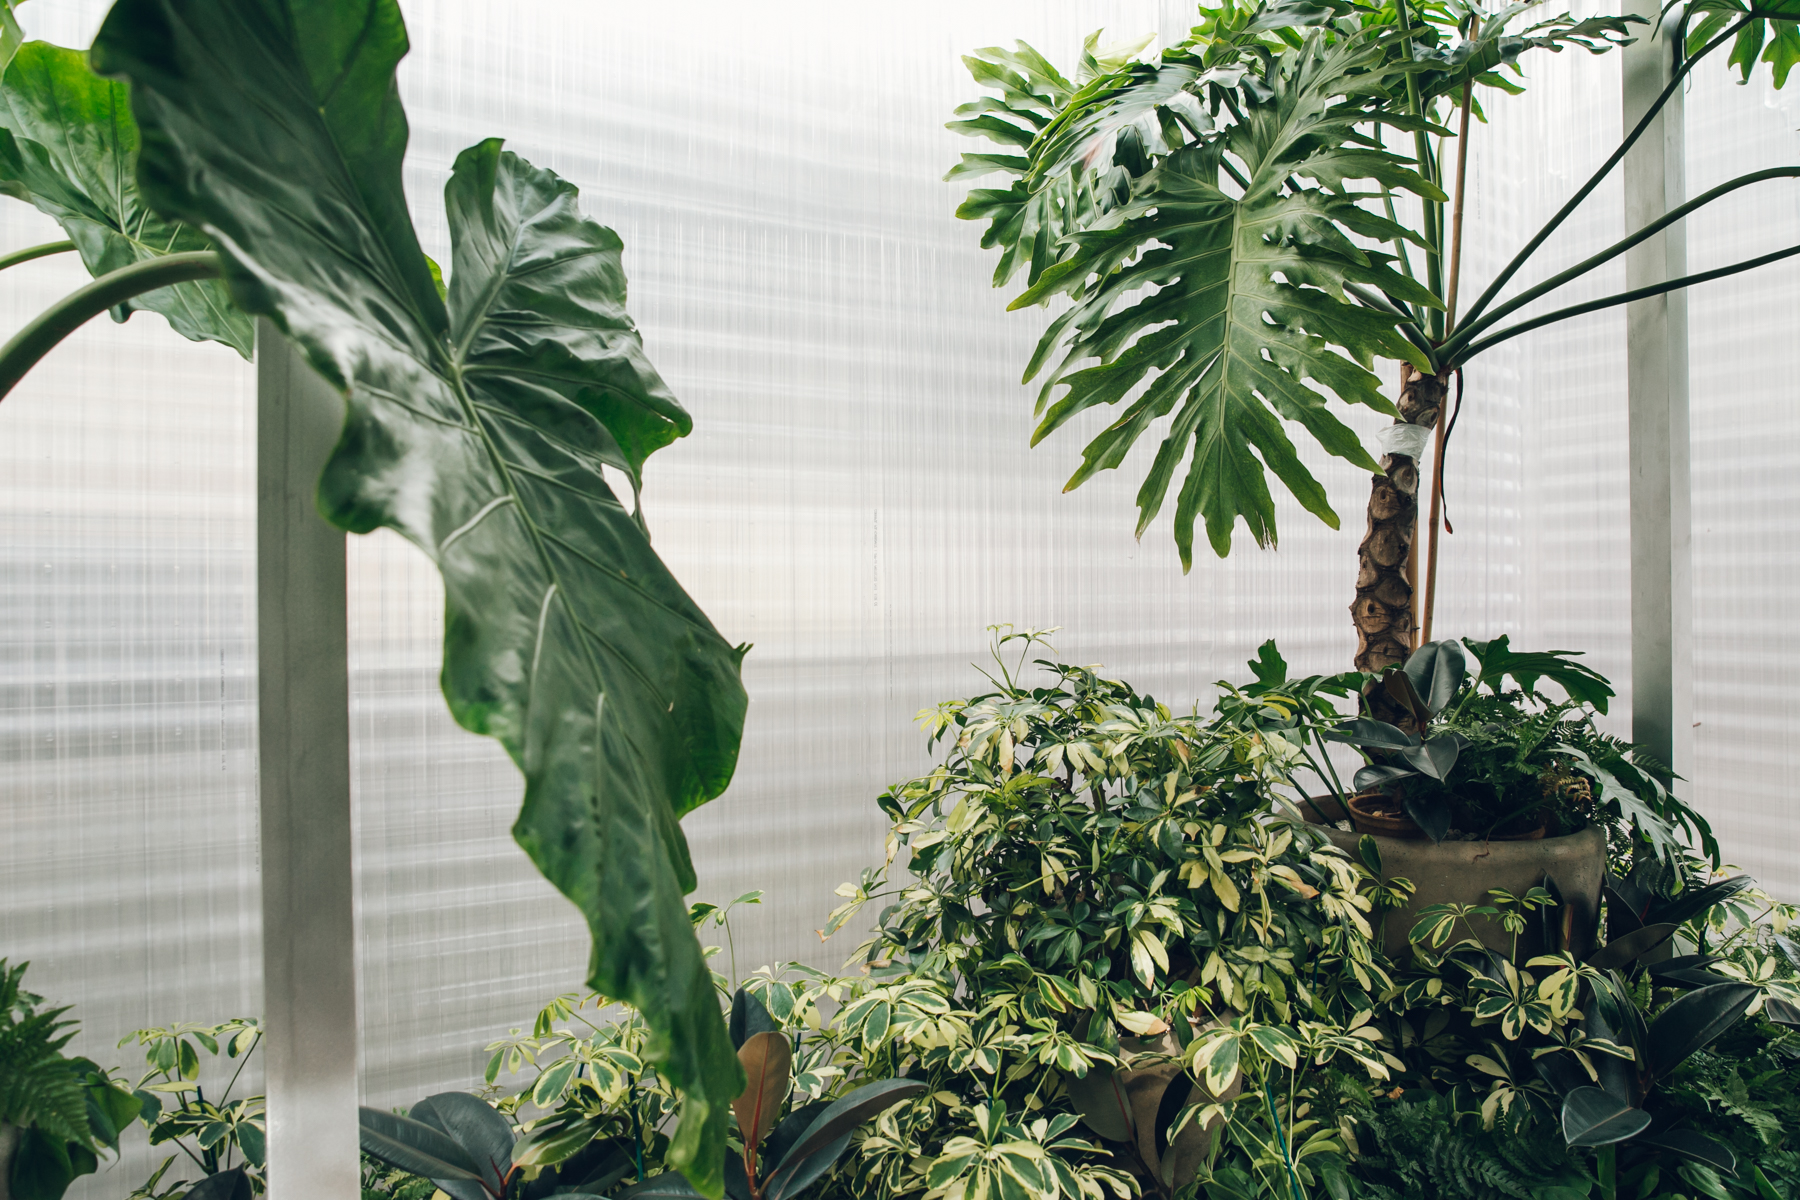 Houseplants inside the MINILiving Forests installation.